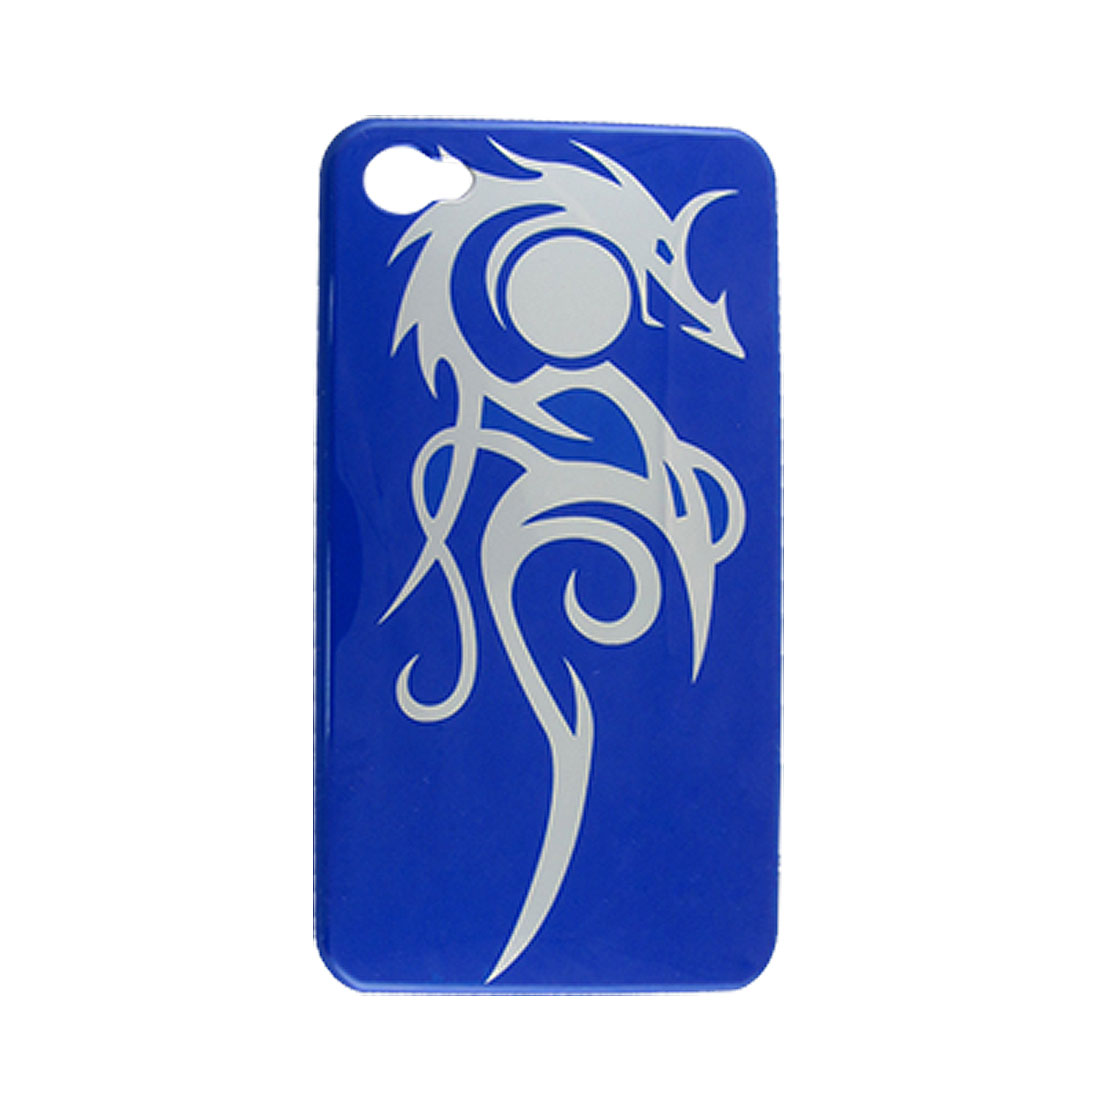 Blue Hard Plastic Silver Tone Dragon Prints Back Shell for iPhone 4 4G